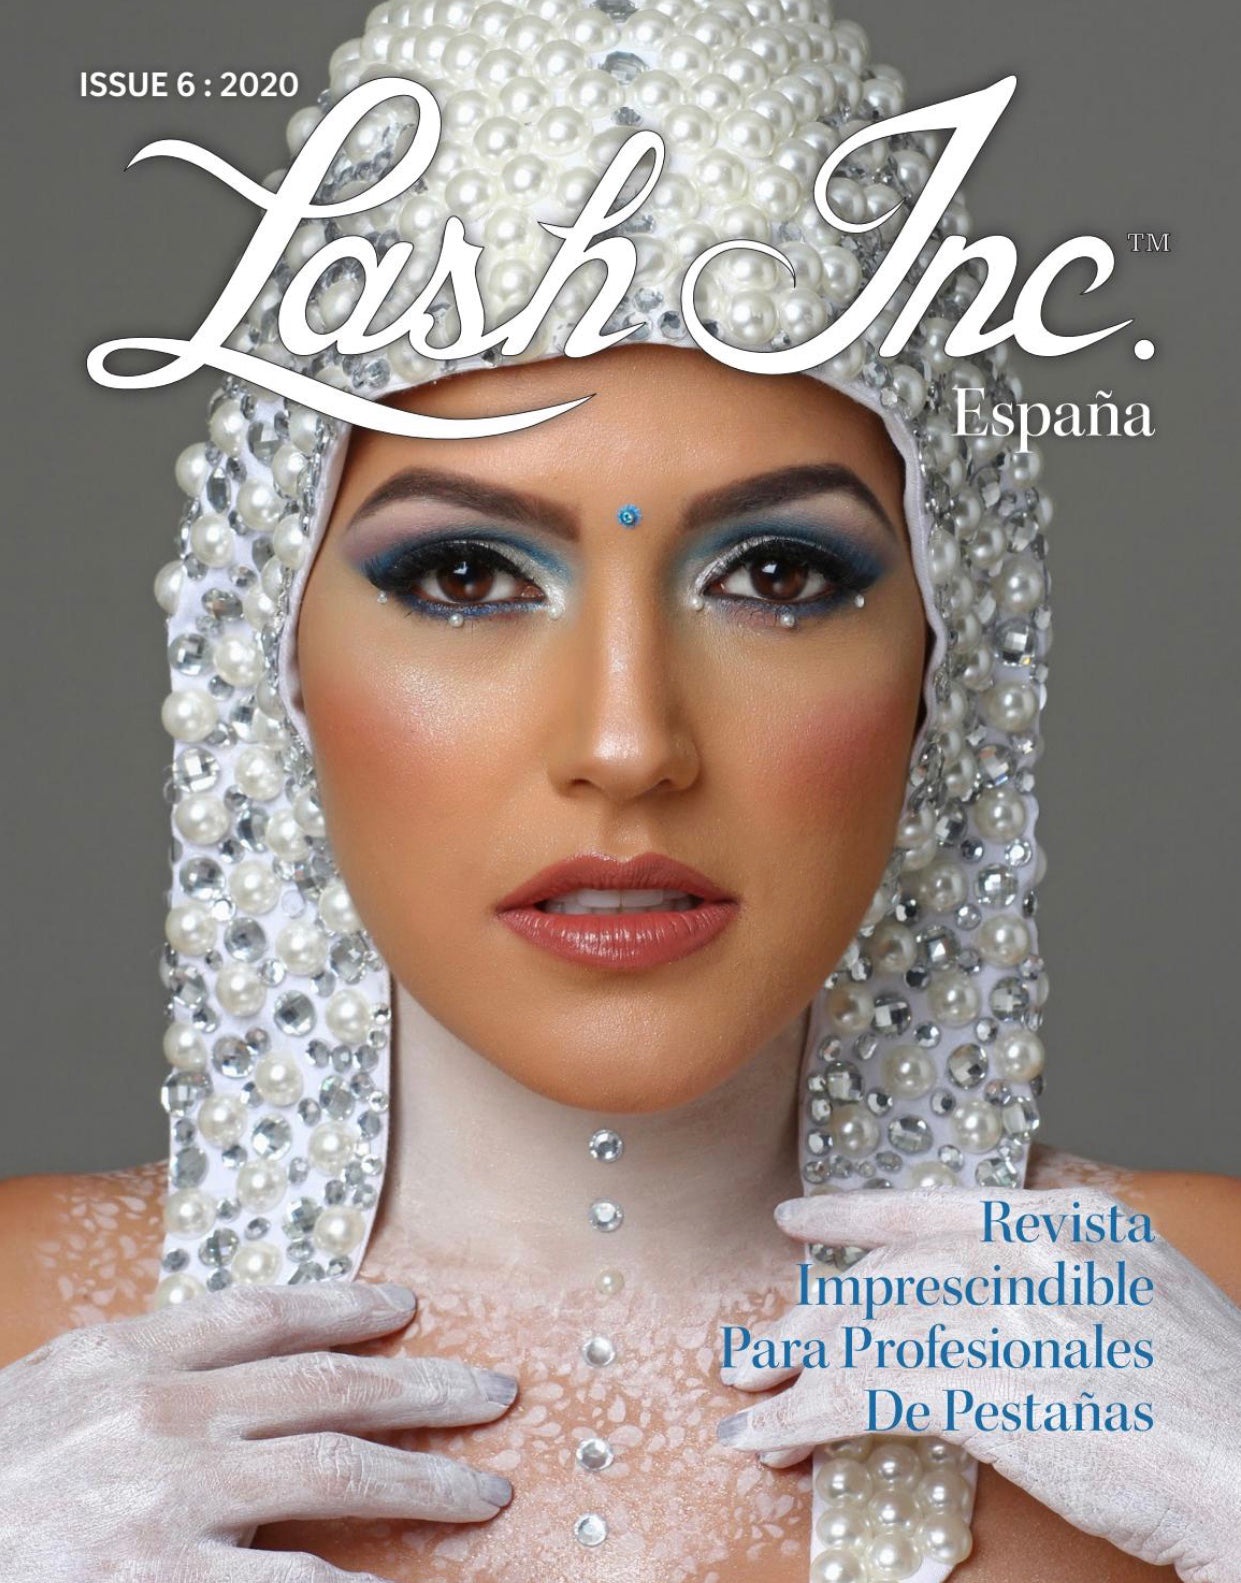 Revista Lash Inc. España Nr.6 - version digital